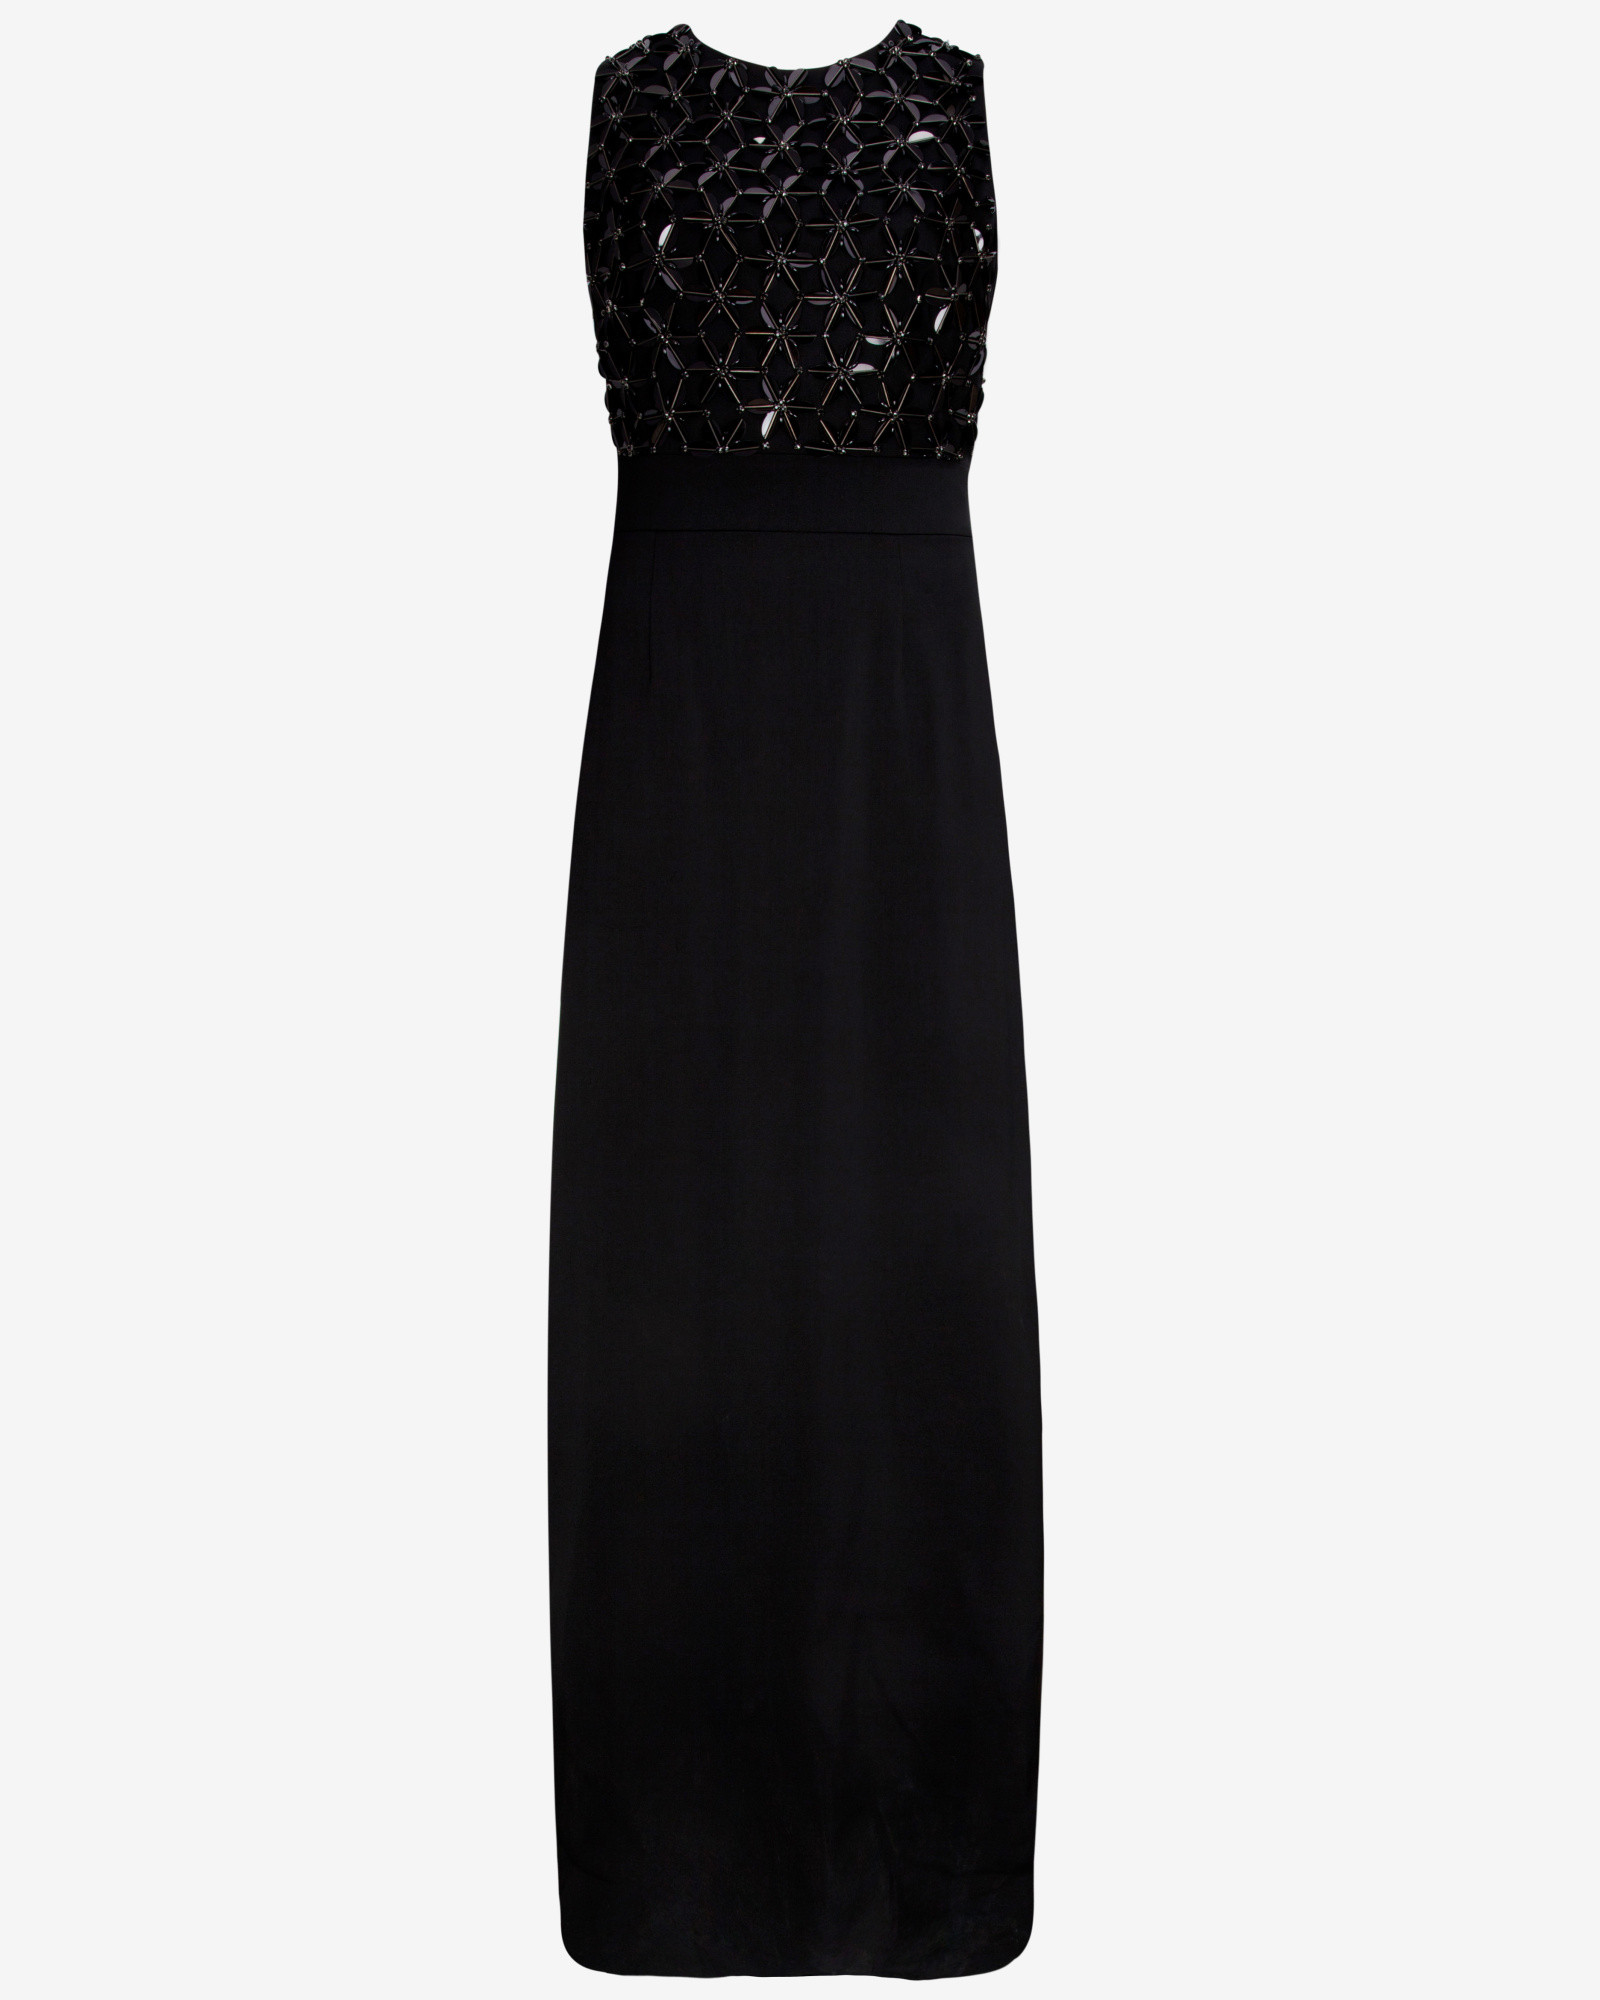 Ted baker Embellished Maxi Dress in Black | Lyst